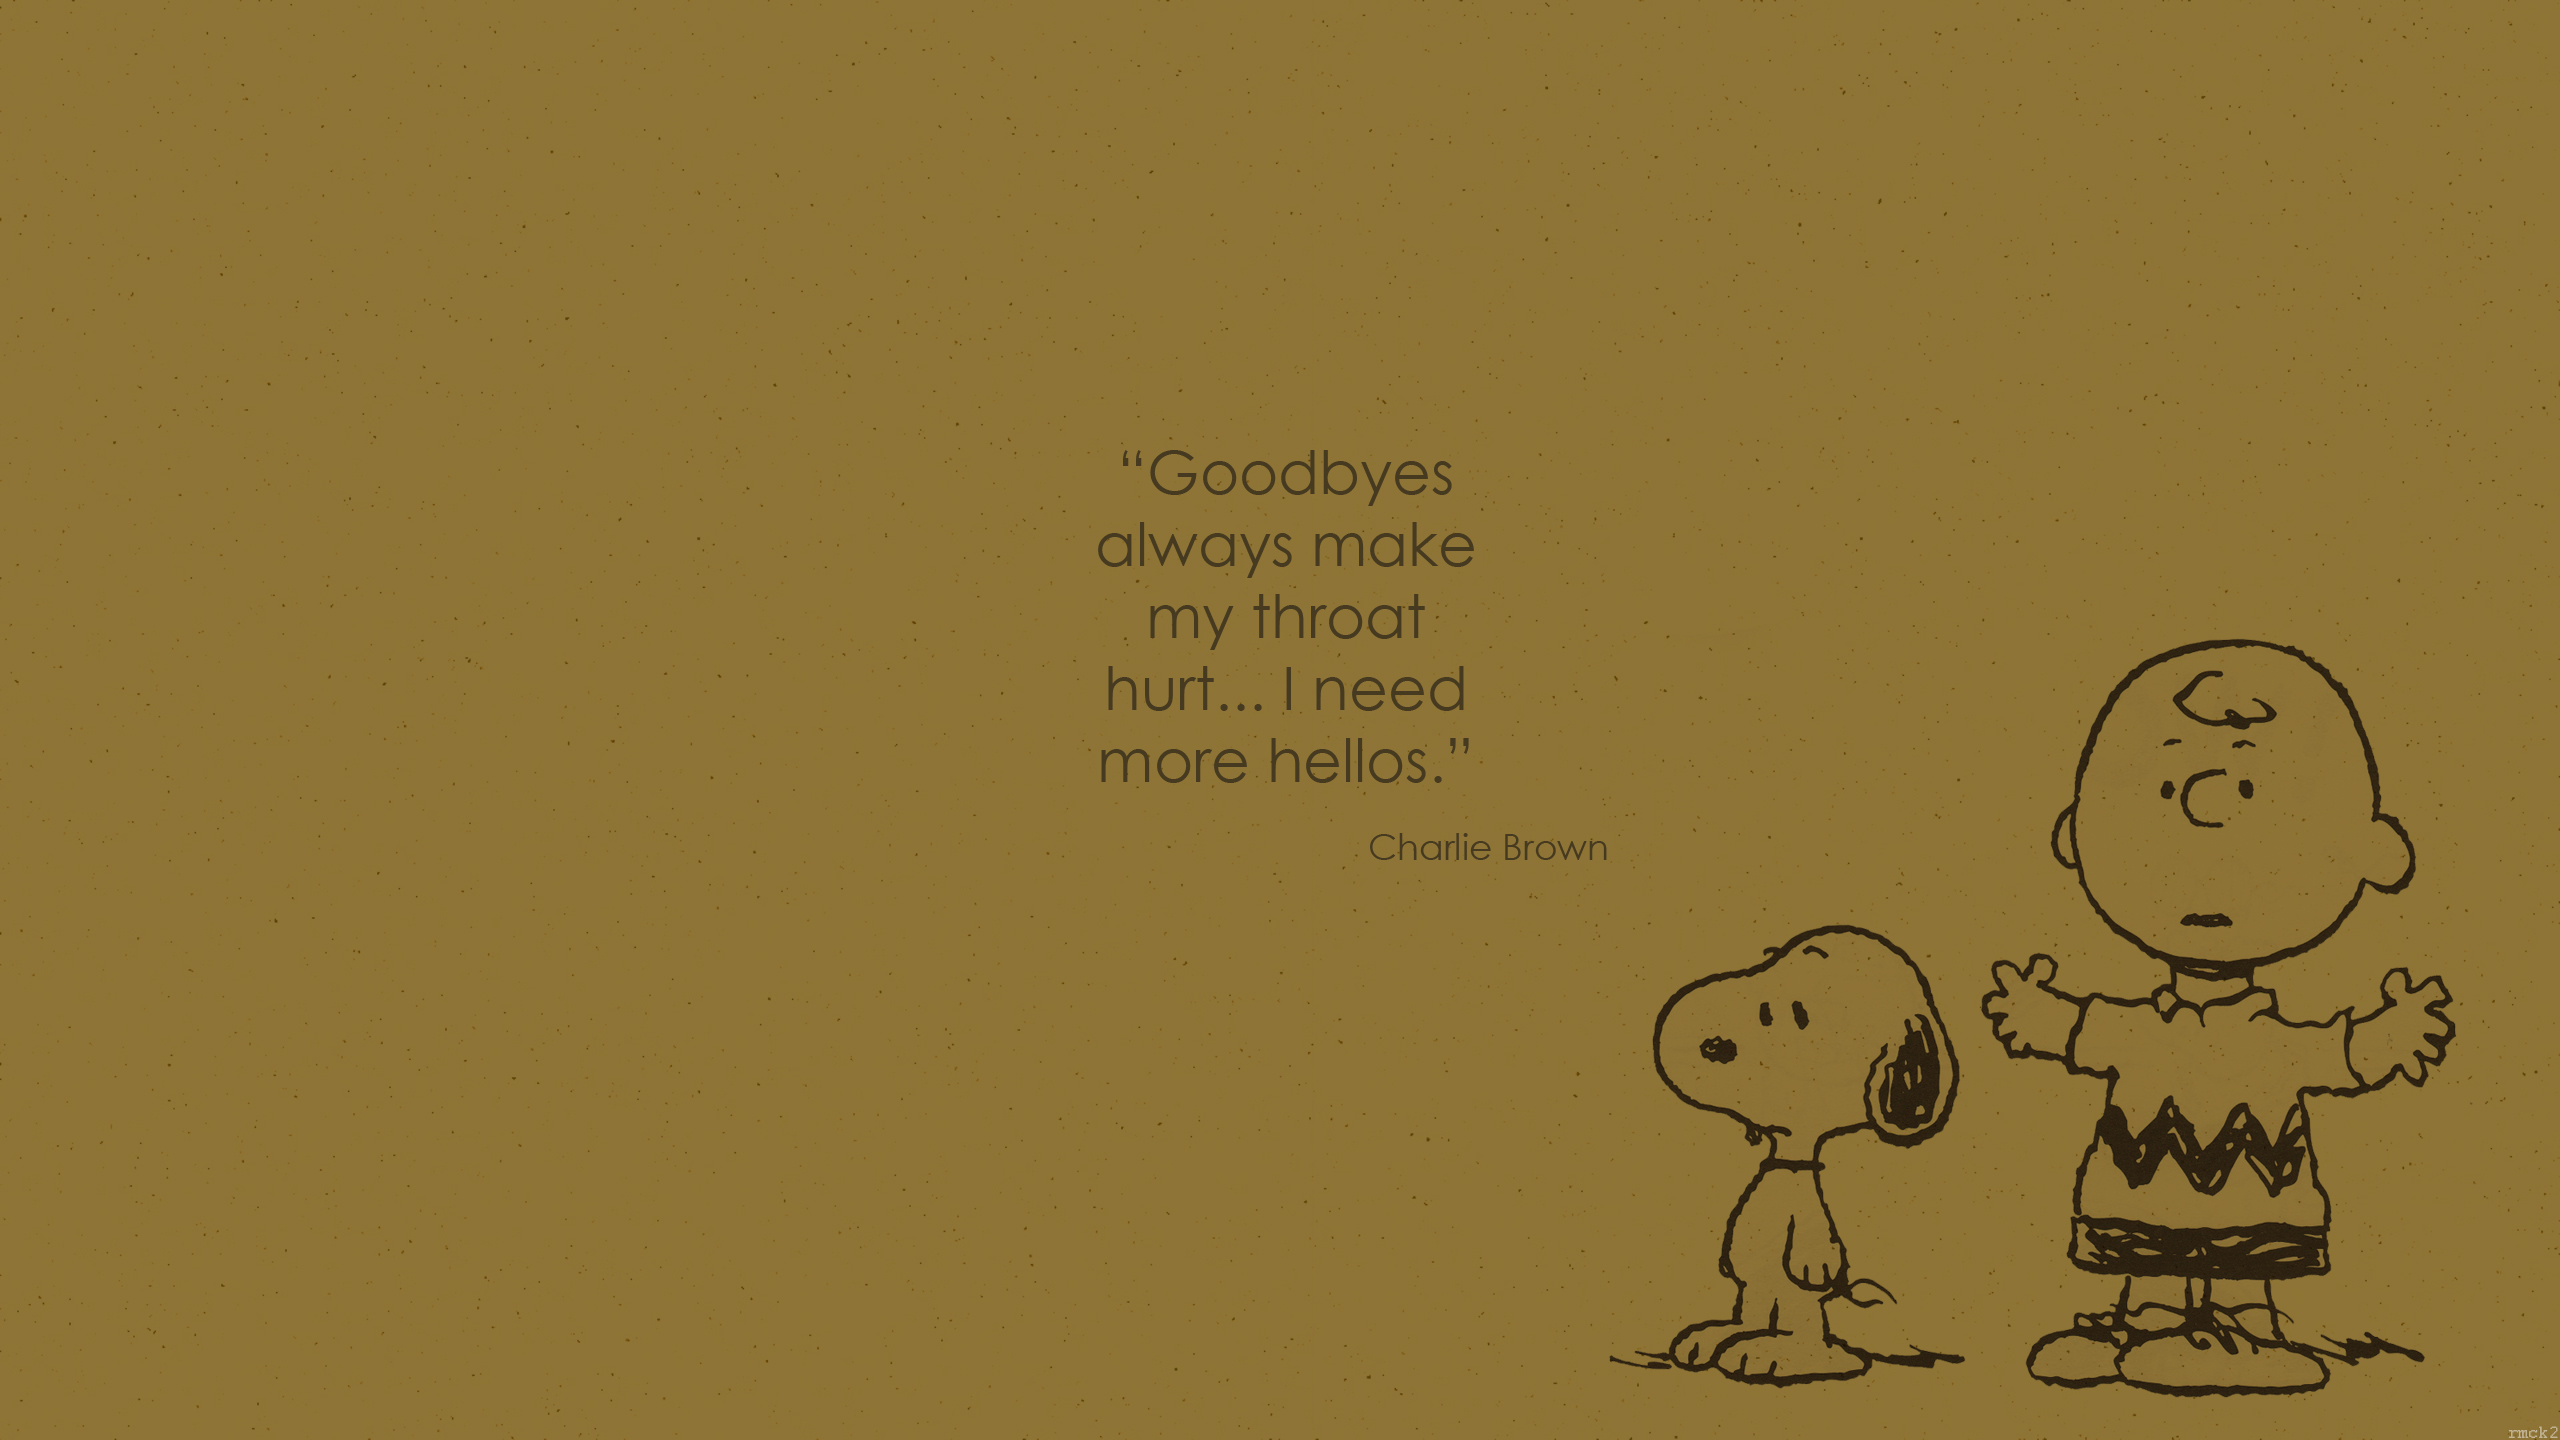 Wallpaper Charlie Brown quote 1 by rmck2 2560x1440